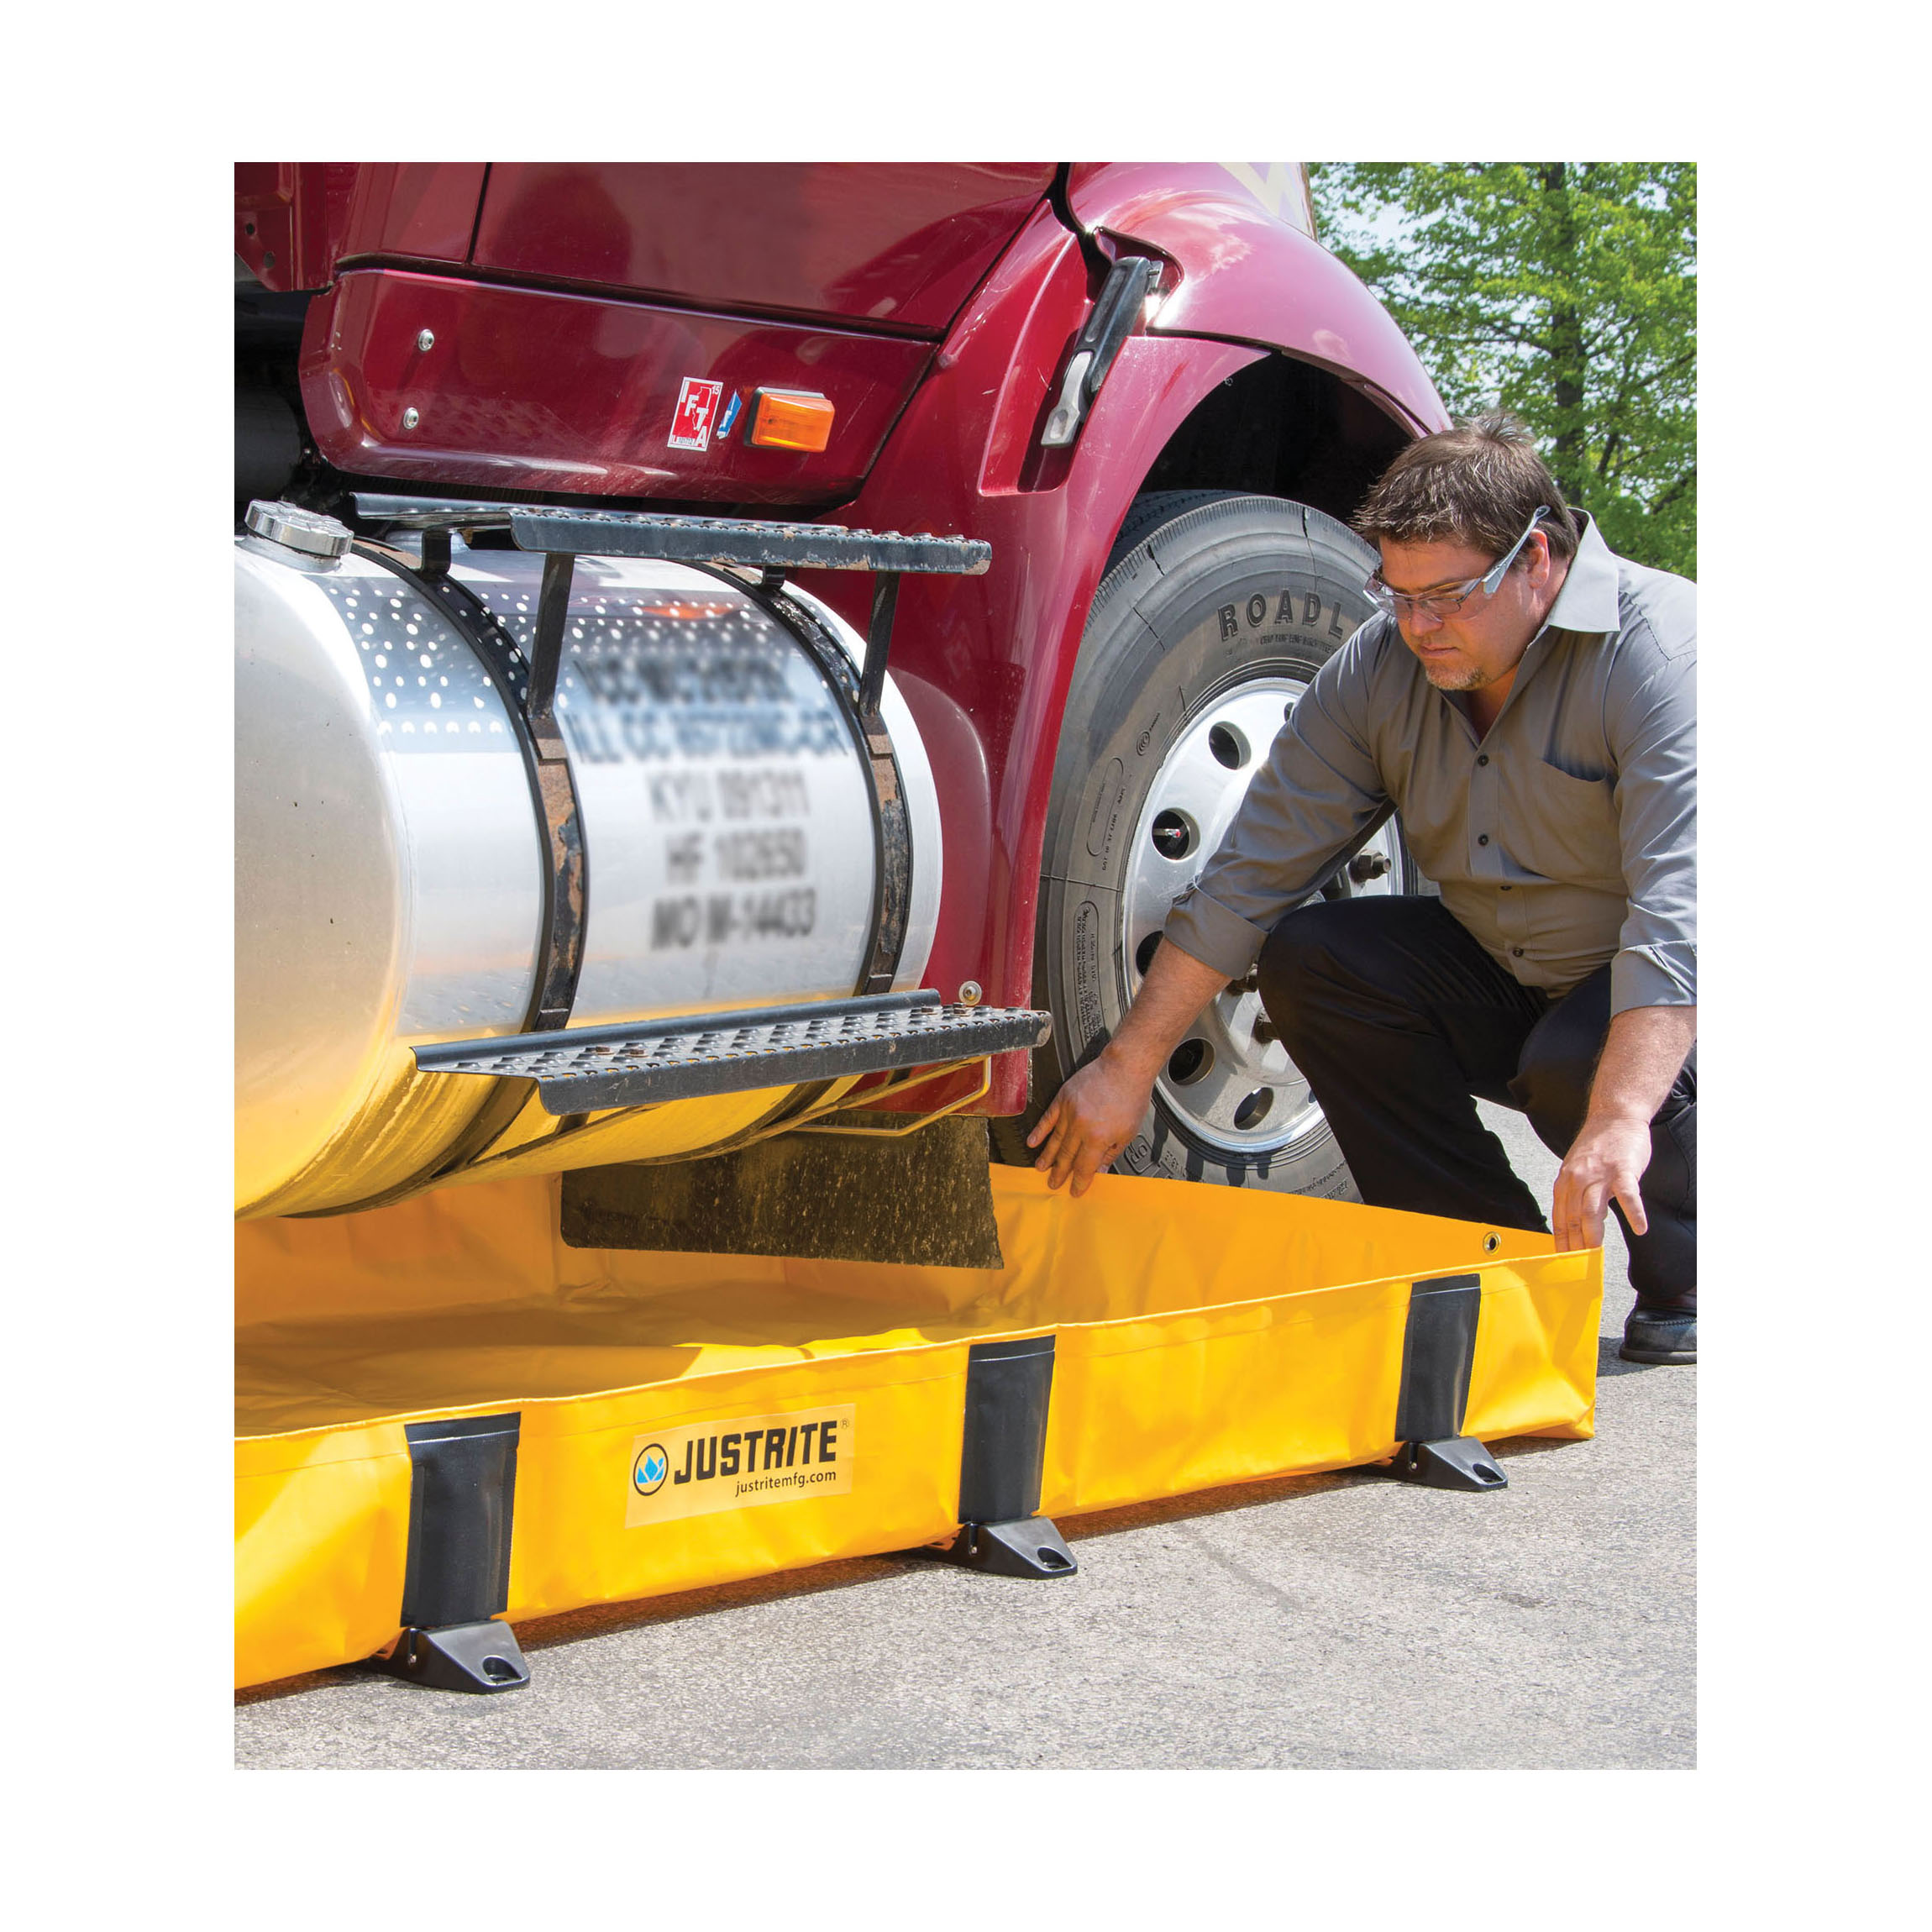 Justrite® 28376 Rigid-Lock QuickBerm® Lite Spill Containment Berm, 8 ft L x 8 ft W x 8 in H, EnGuard™ I/PVC Coated Fabric